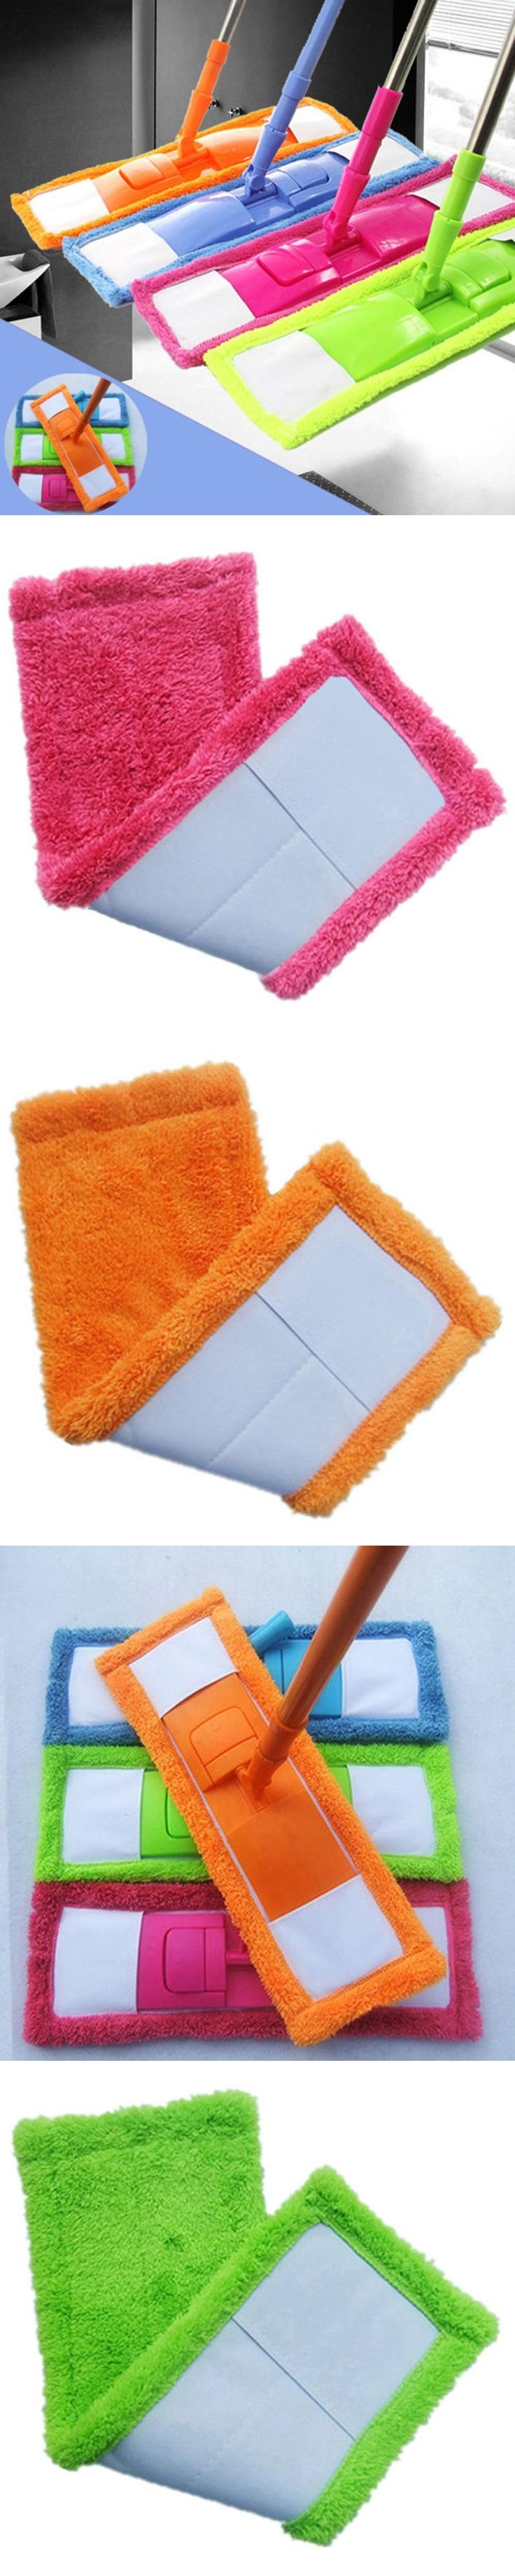 Saingace Dust Mop Head Replacement Home Cleaning Pad Coral Velet Refill Household Use Colorful Mop Head Happy Sale ap602